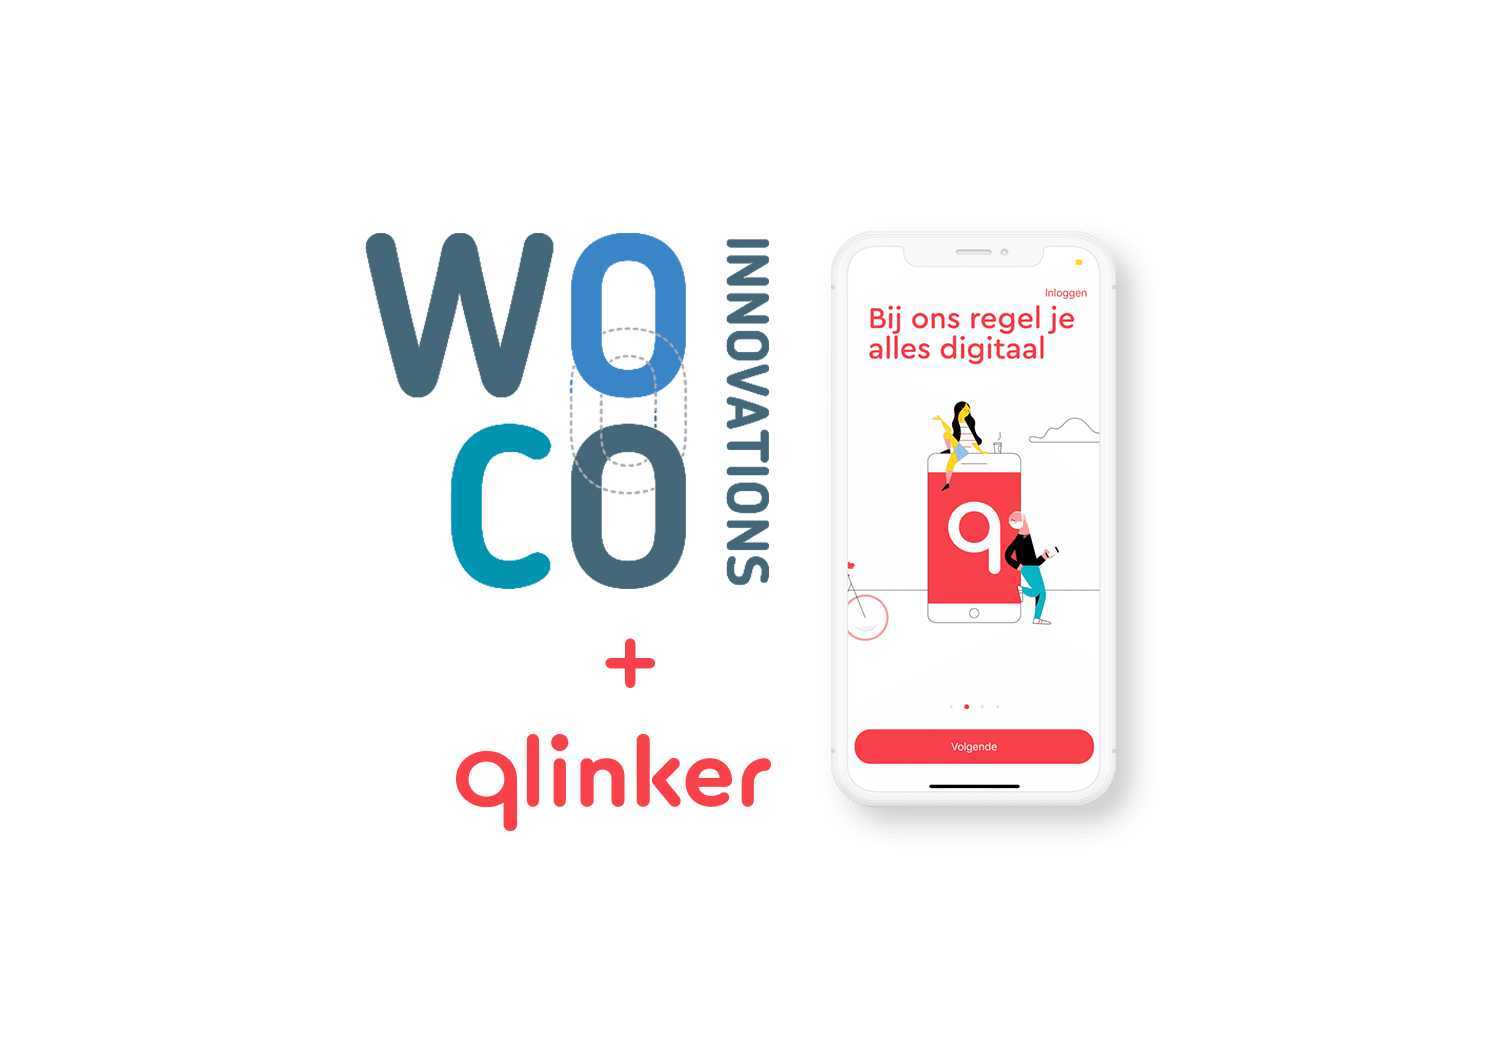 WOCO Innovations Qlinker app